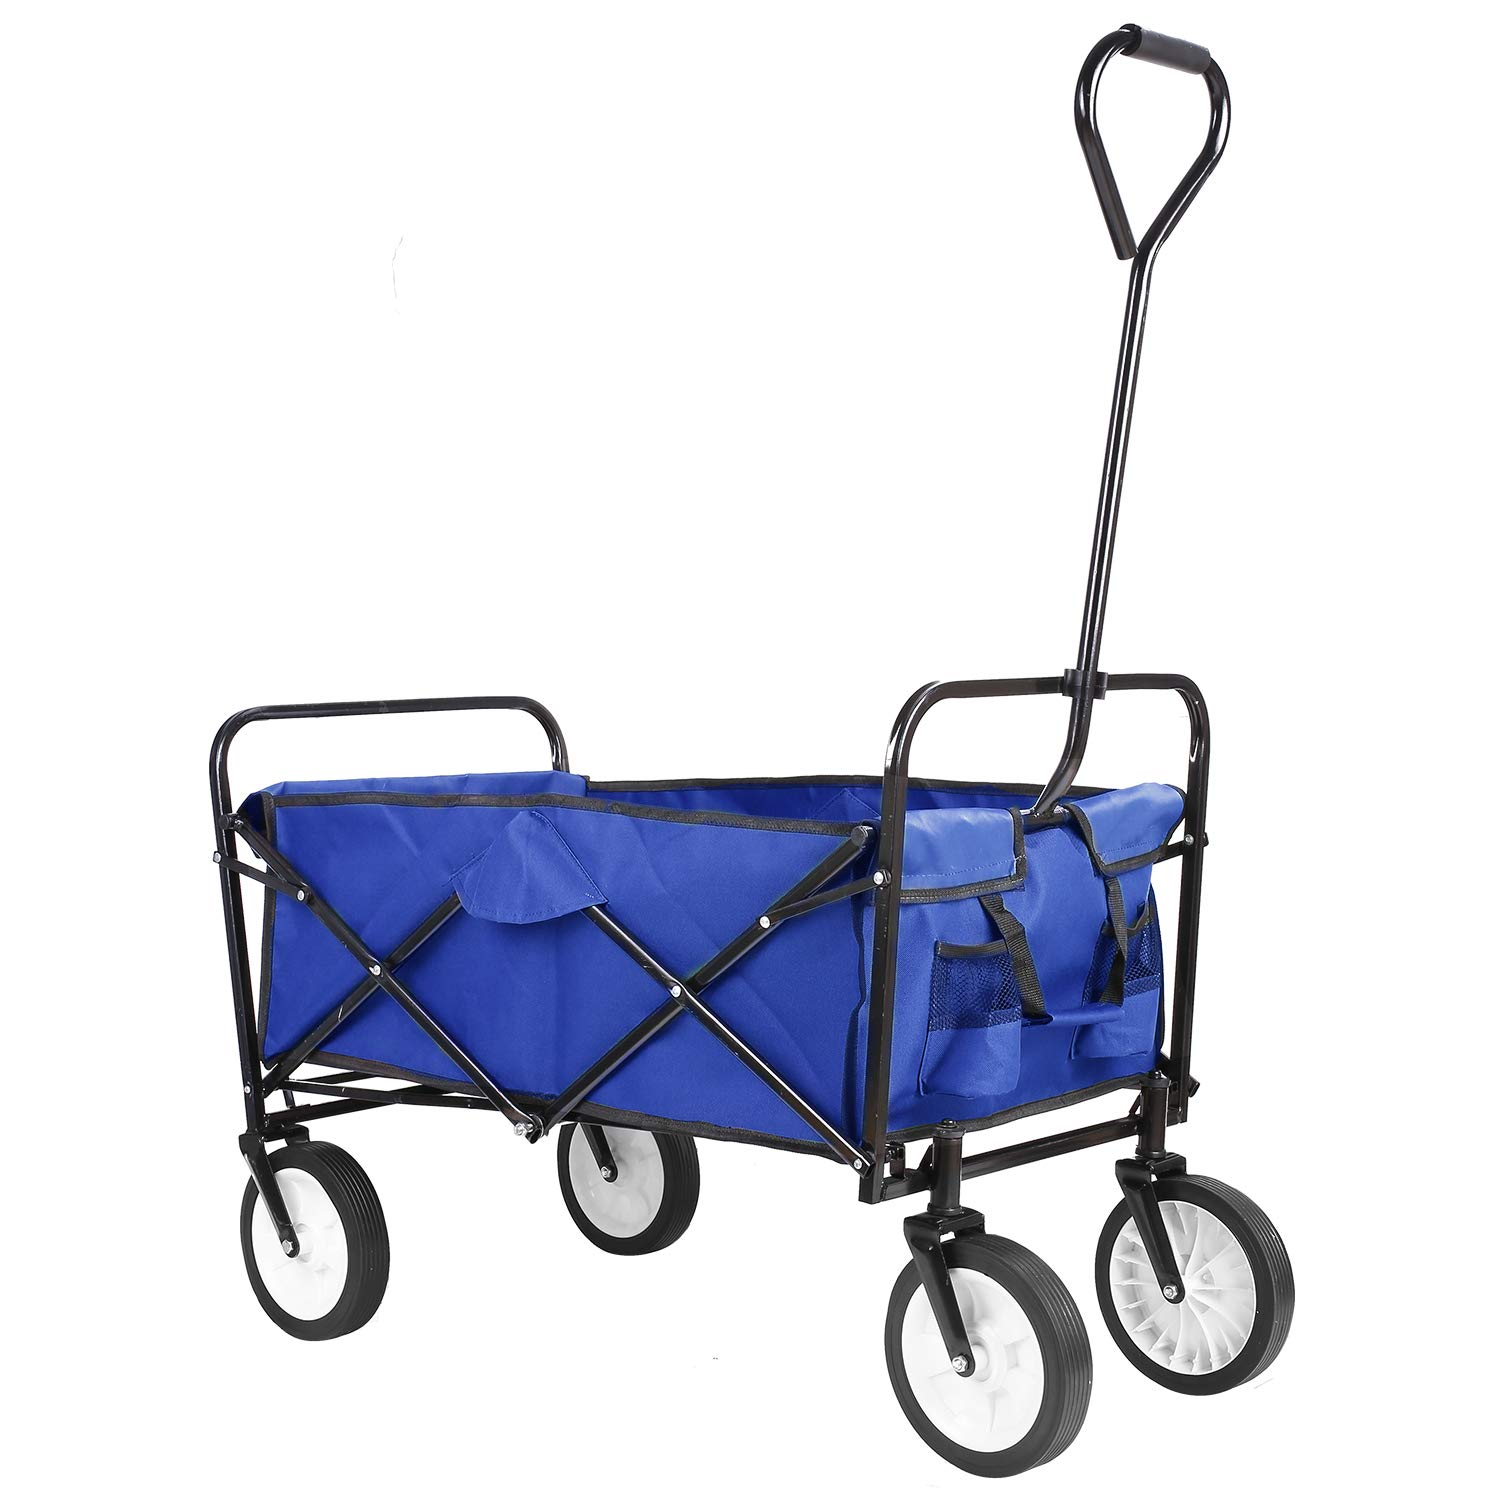 Collapsible Outdoor Utility Wagon, Heavy Duty Folding Garden Portable Hand Cart, with 8'' Rubber Wheels and Drink Holder, Suit for Shopping and Park Picnic, Beach Trip and Camping (Blue) by HEMBOR (Image #2)